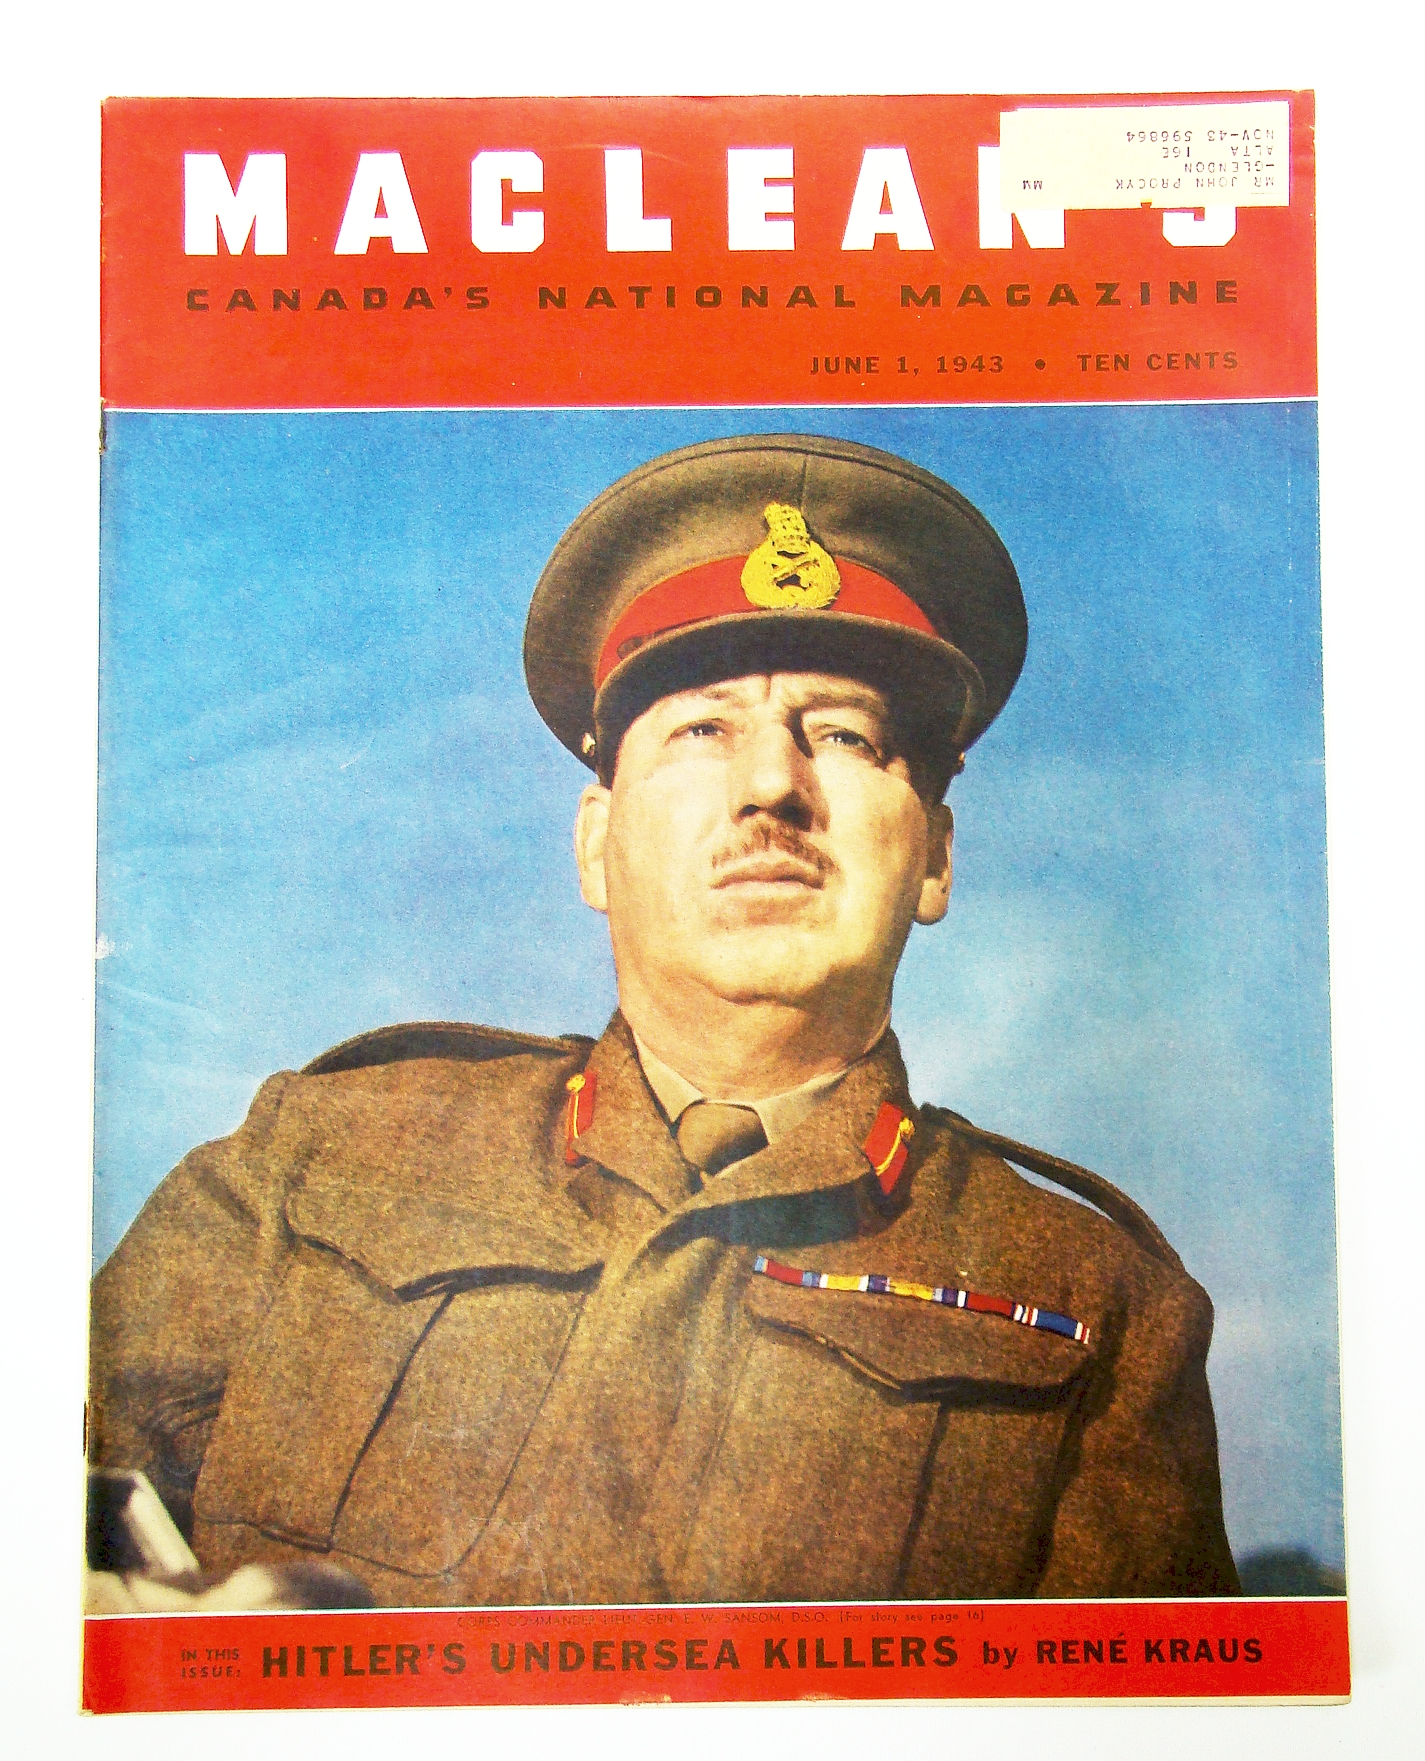 Image for Maclean's, Canada's National Magazine, June 1, 1943, Vol. 56, No. 11 - Cover Photo of Lieut.-Gen. E.W. Sansom, D.S.O. / Grand Admiral Karl Doenitz